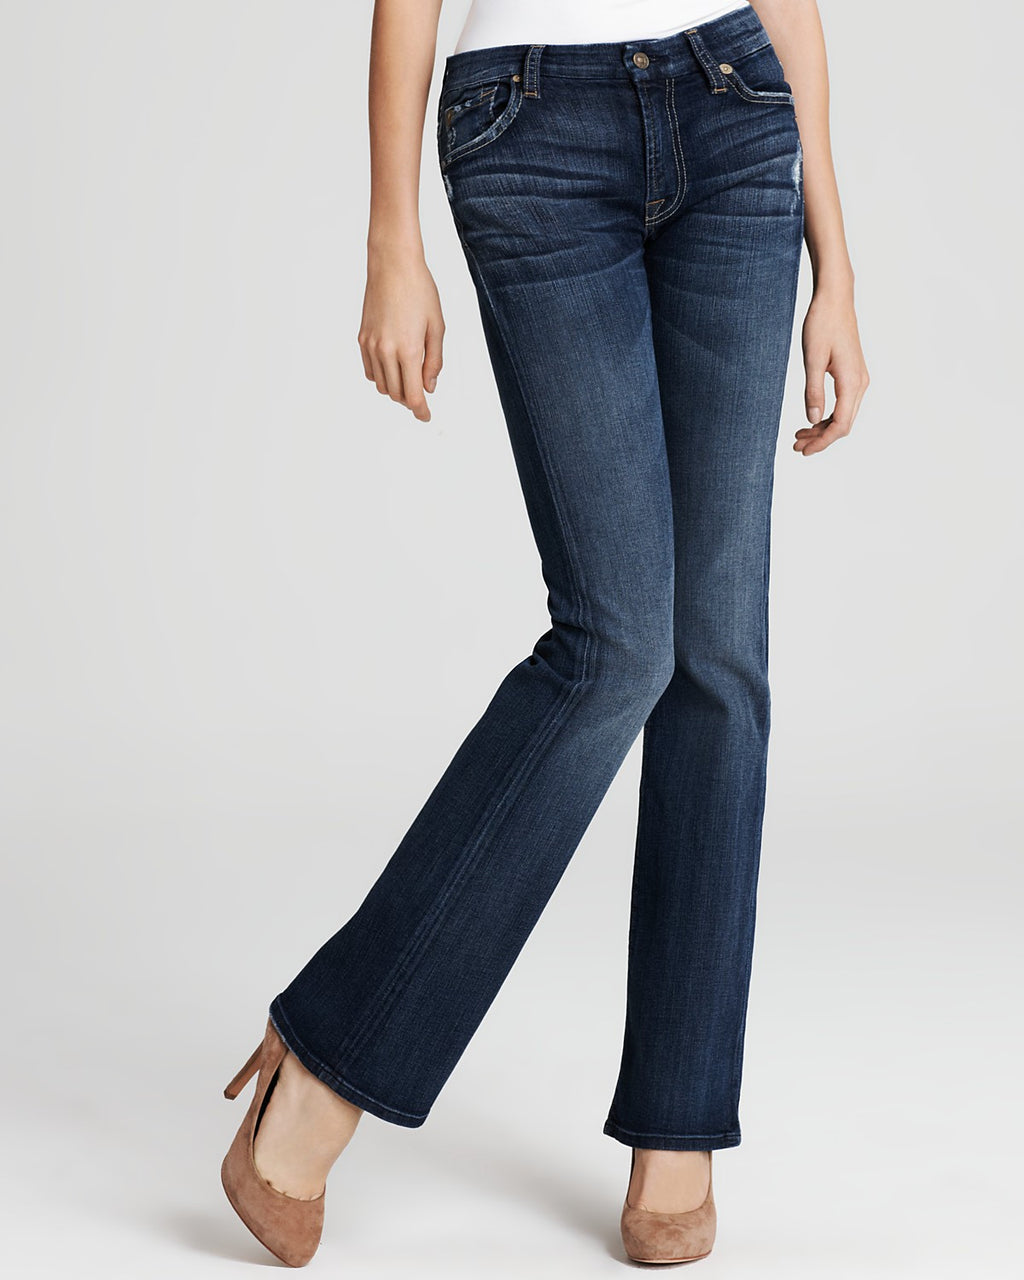 7 For All Mankind Kimmie Boot-Cut Medium Wash Jeans - Joyce's Closet  - 7